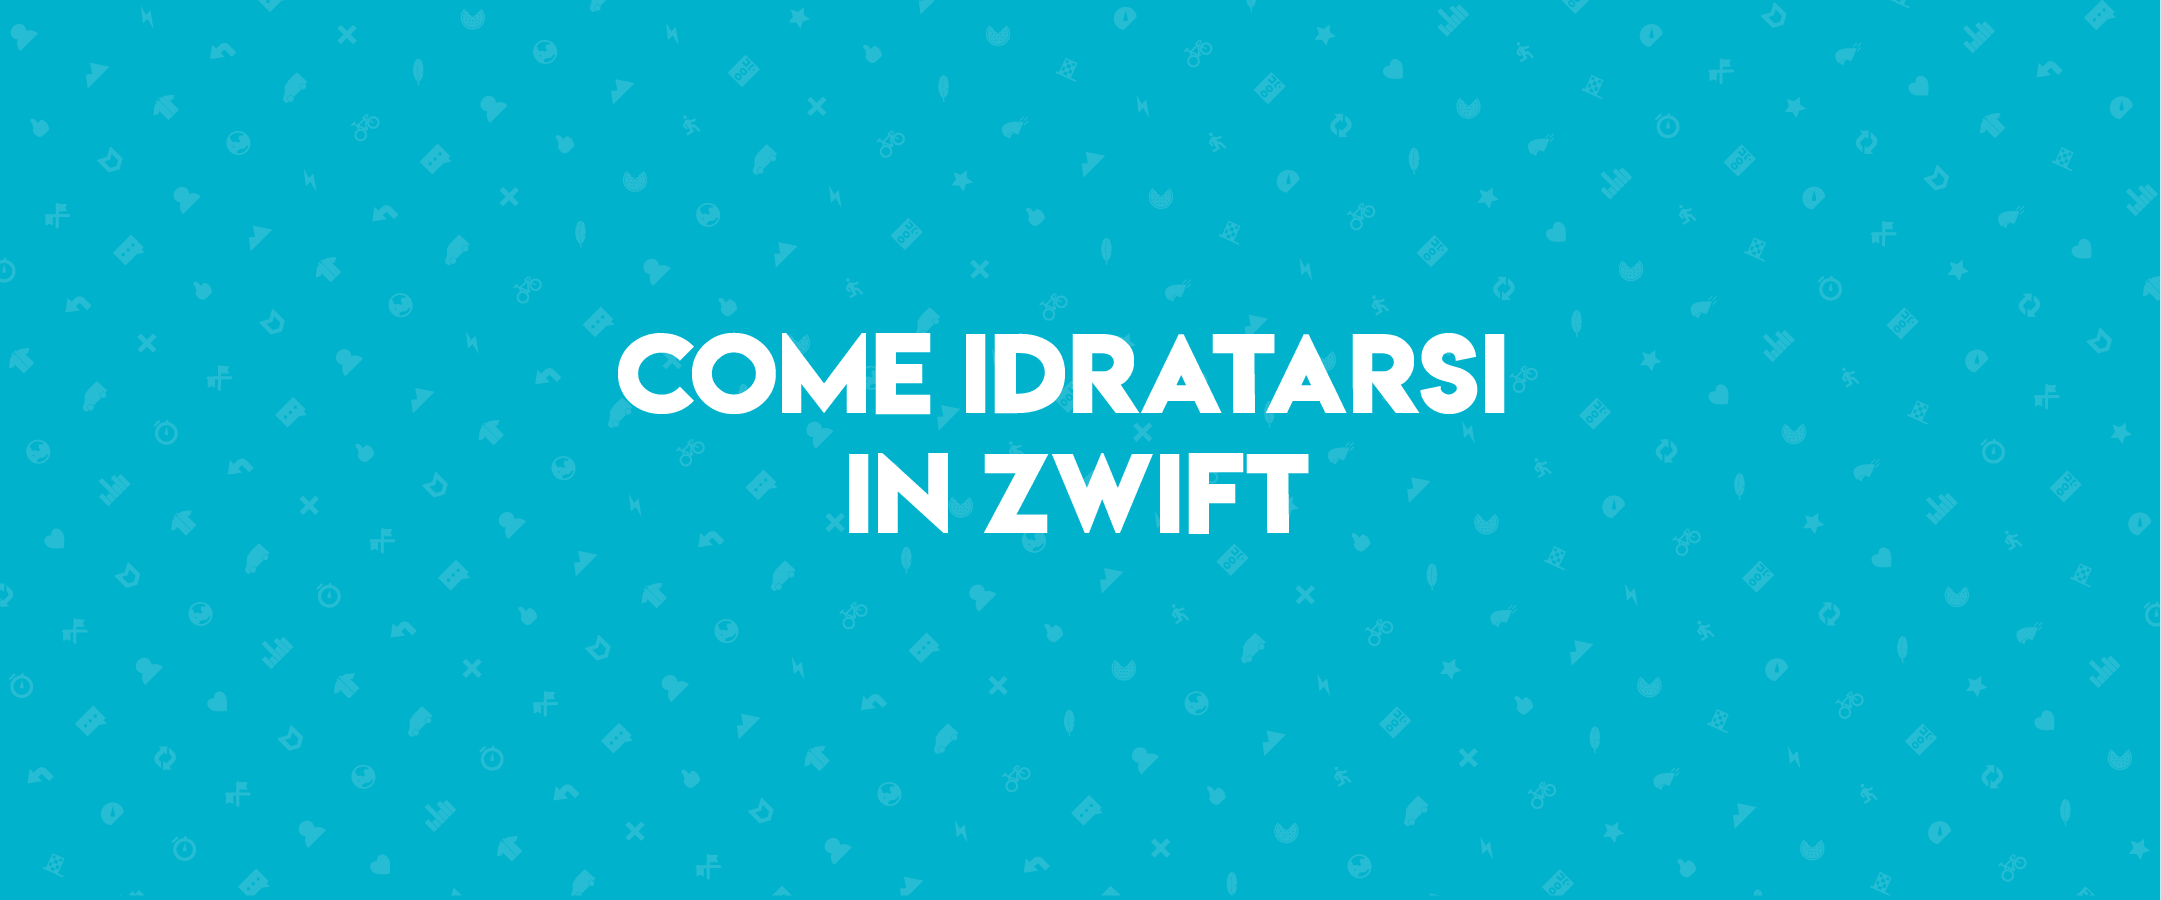 Come idratarsi in Zwift